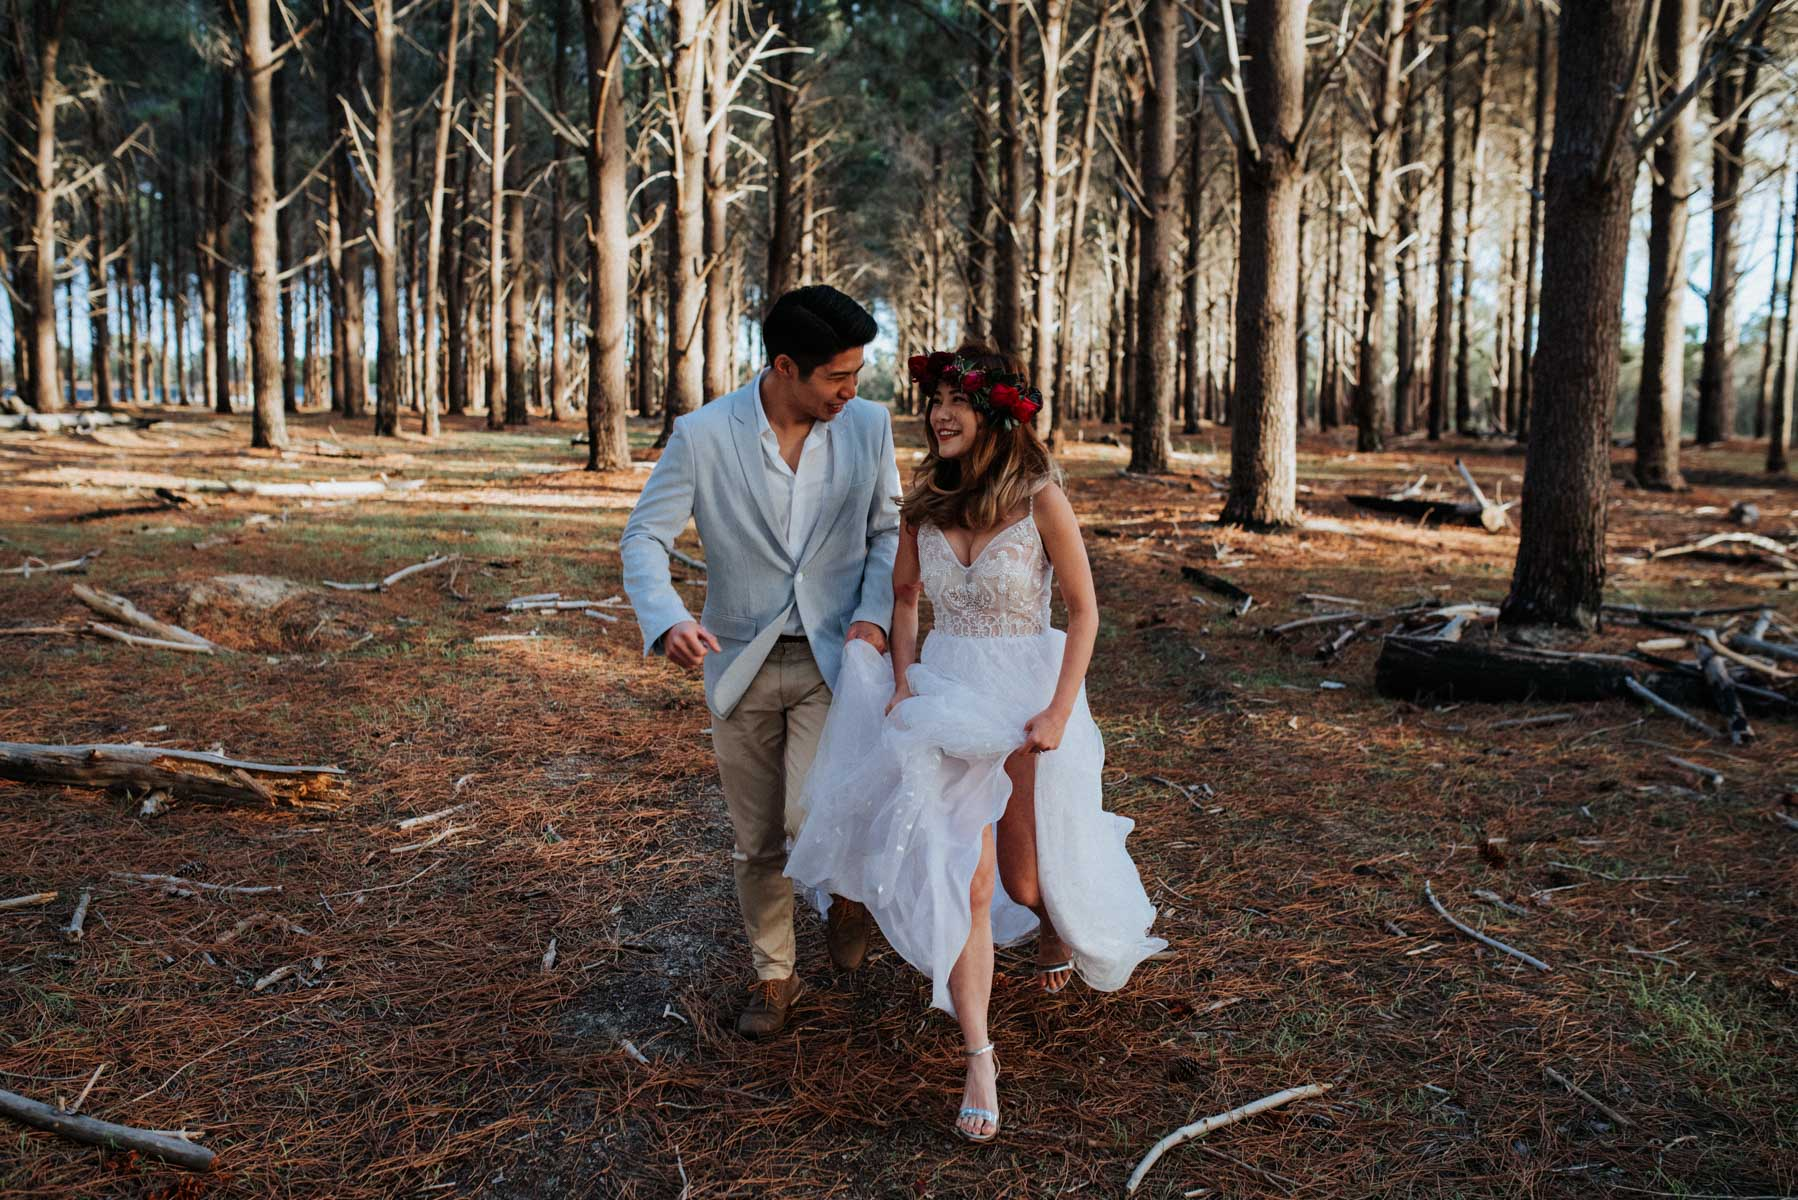 james-julene-forest-elopement-perth-33.JPG